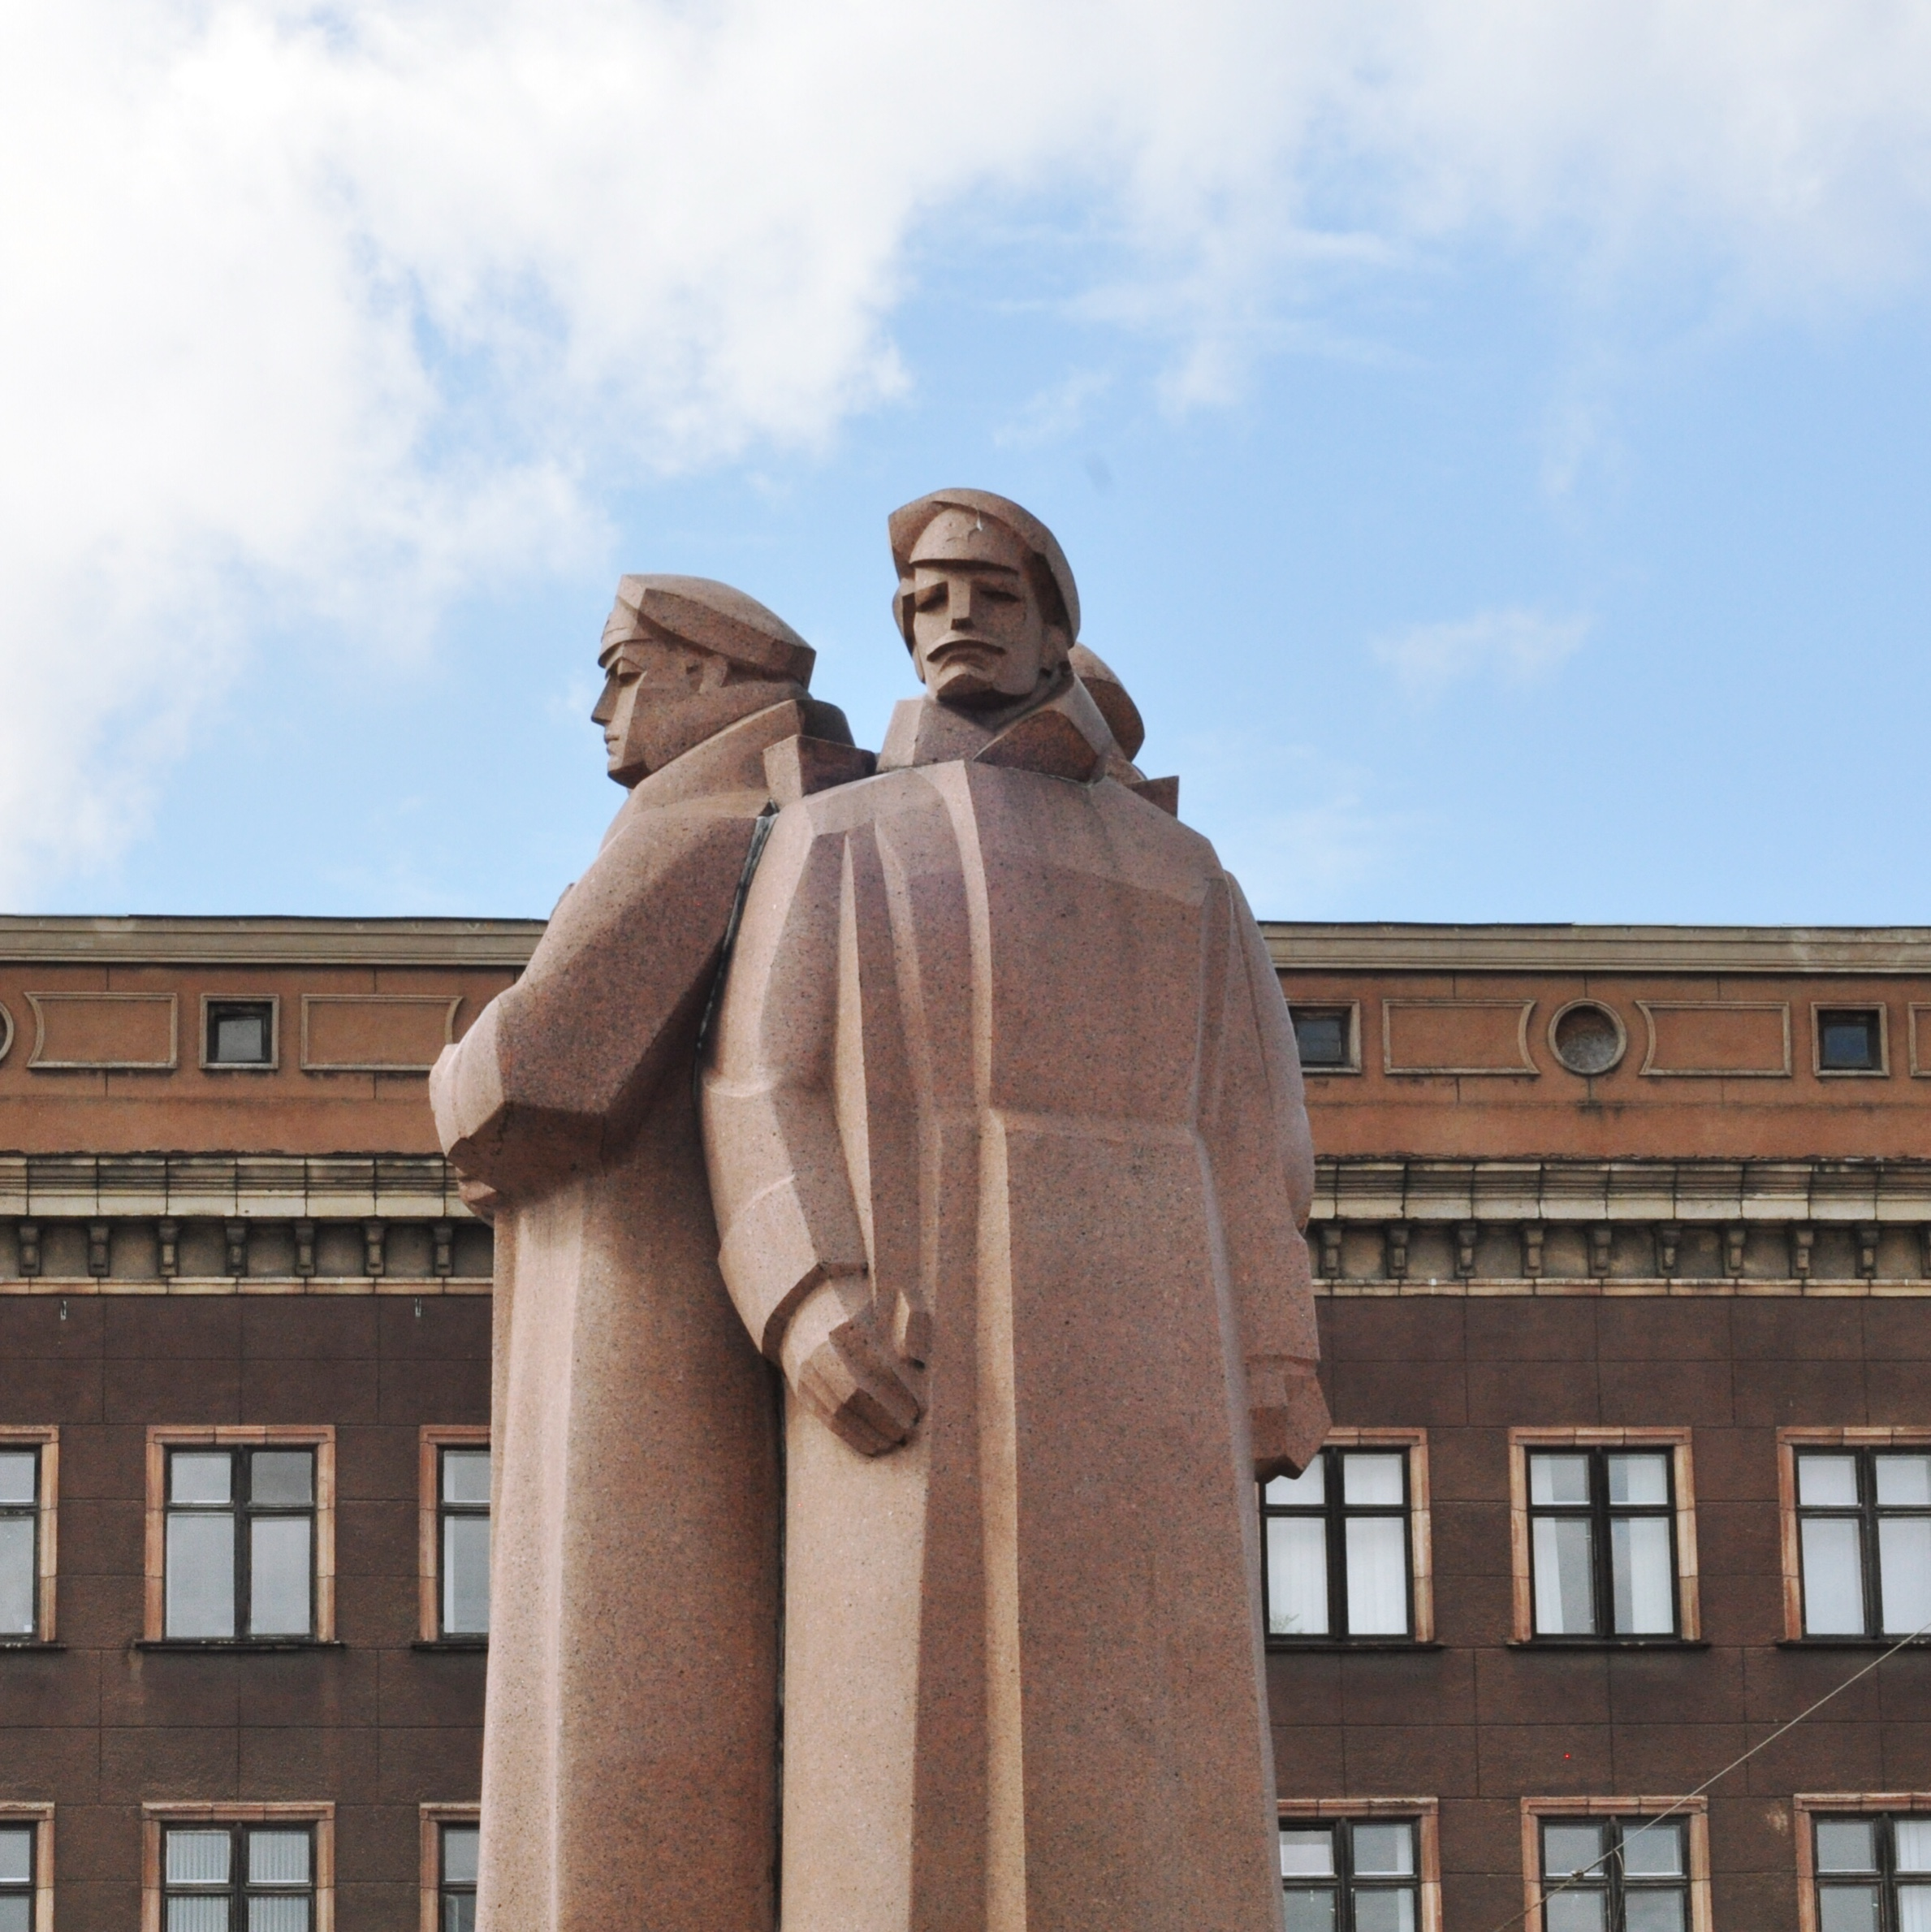 Communist Statue in Riga, Latvia